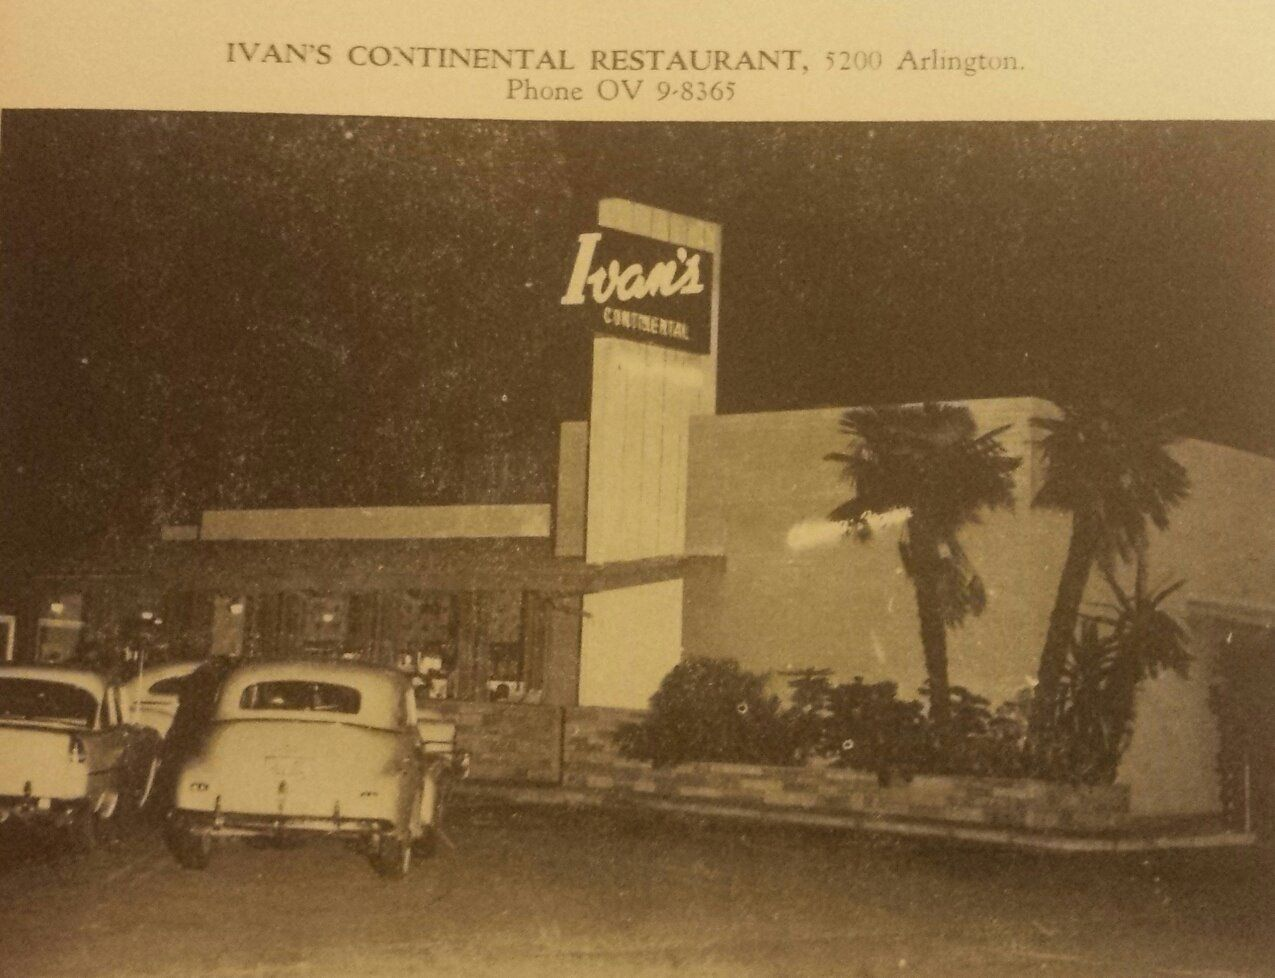 Across the street from Sears on Arlington. Where Denny's was eventually.